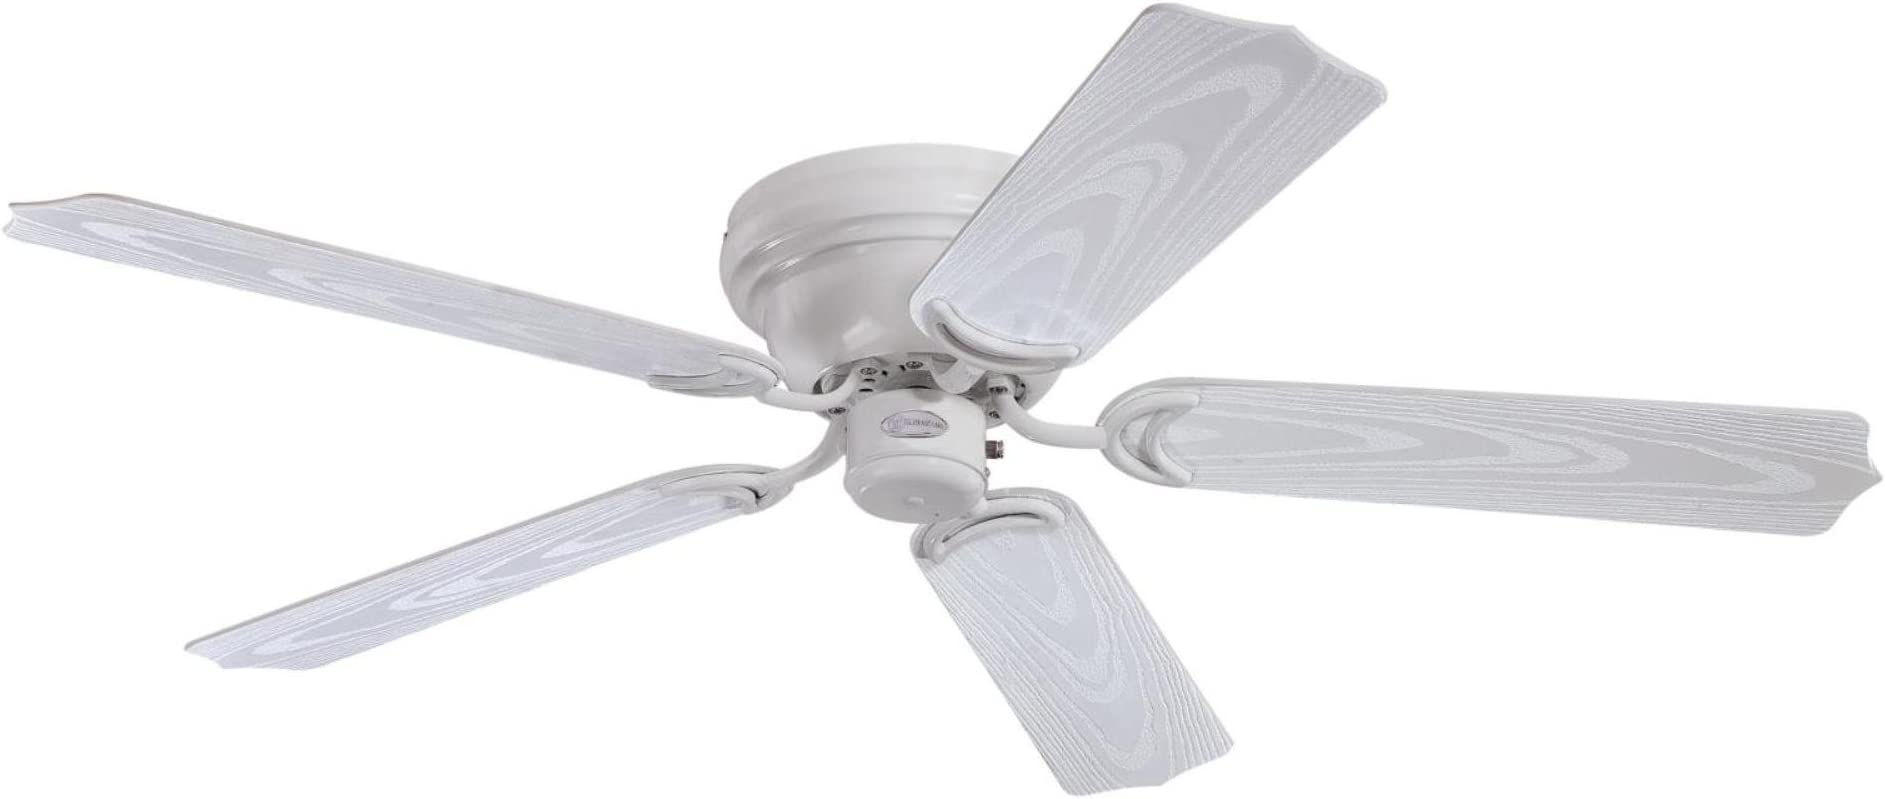 Westinghouse Lighting 7217200 Contempra 48-Inch Indoor/Outdoor Ceiling Fan, White Finish